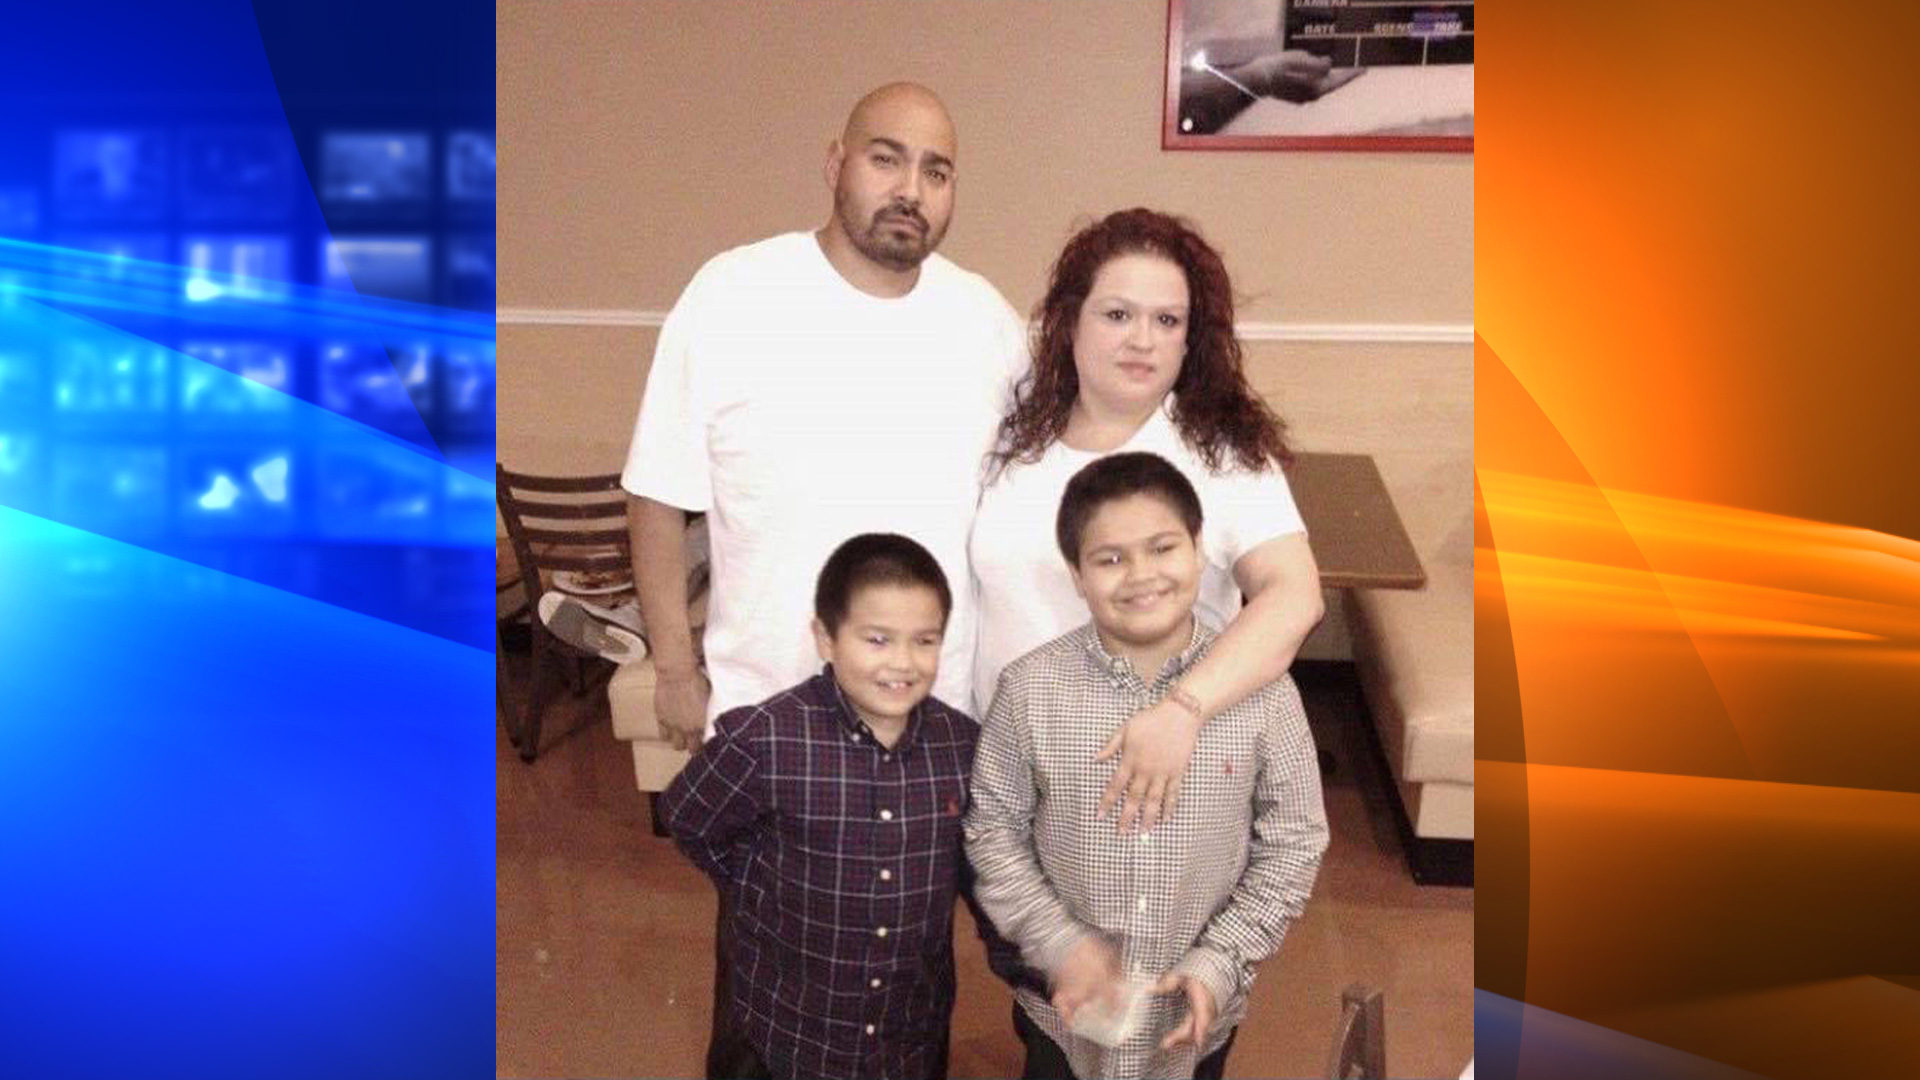 The boys, Nathan, 12, and Isaiah, 14, will now live with their uncle. (Jacob Mendoza)